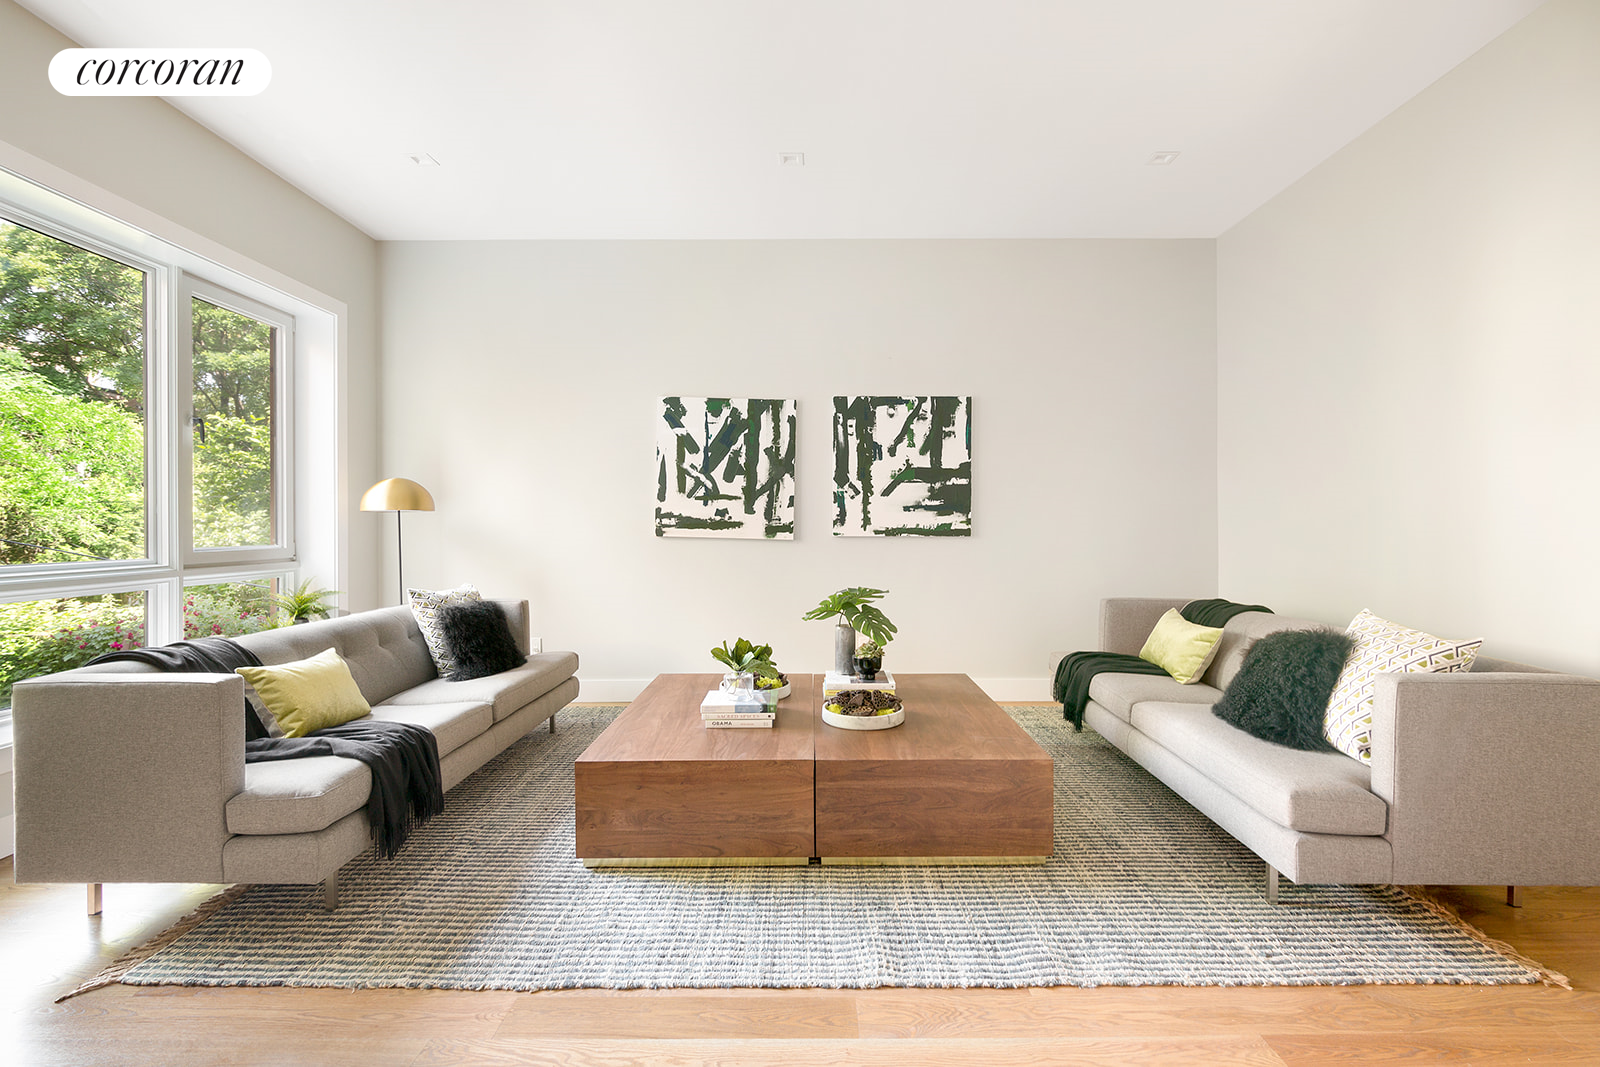 476 Washington Avenue, D, Living Room